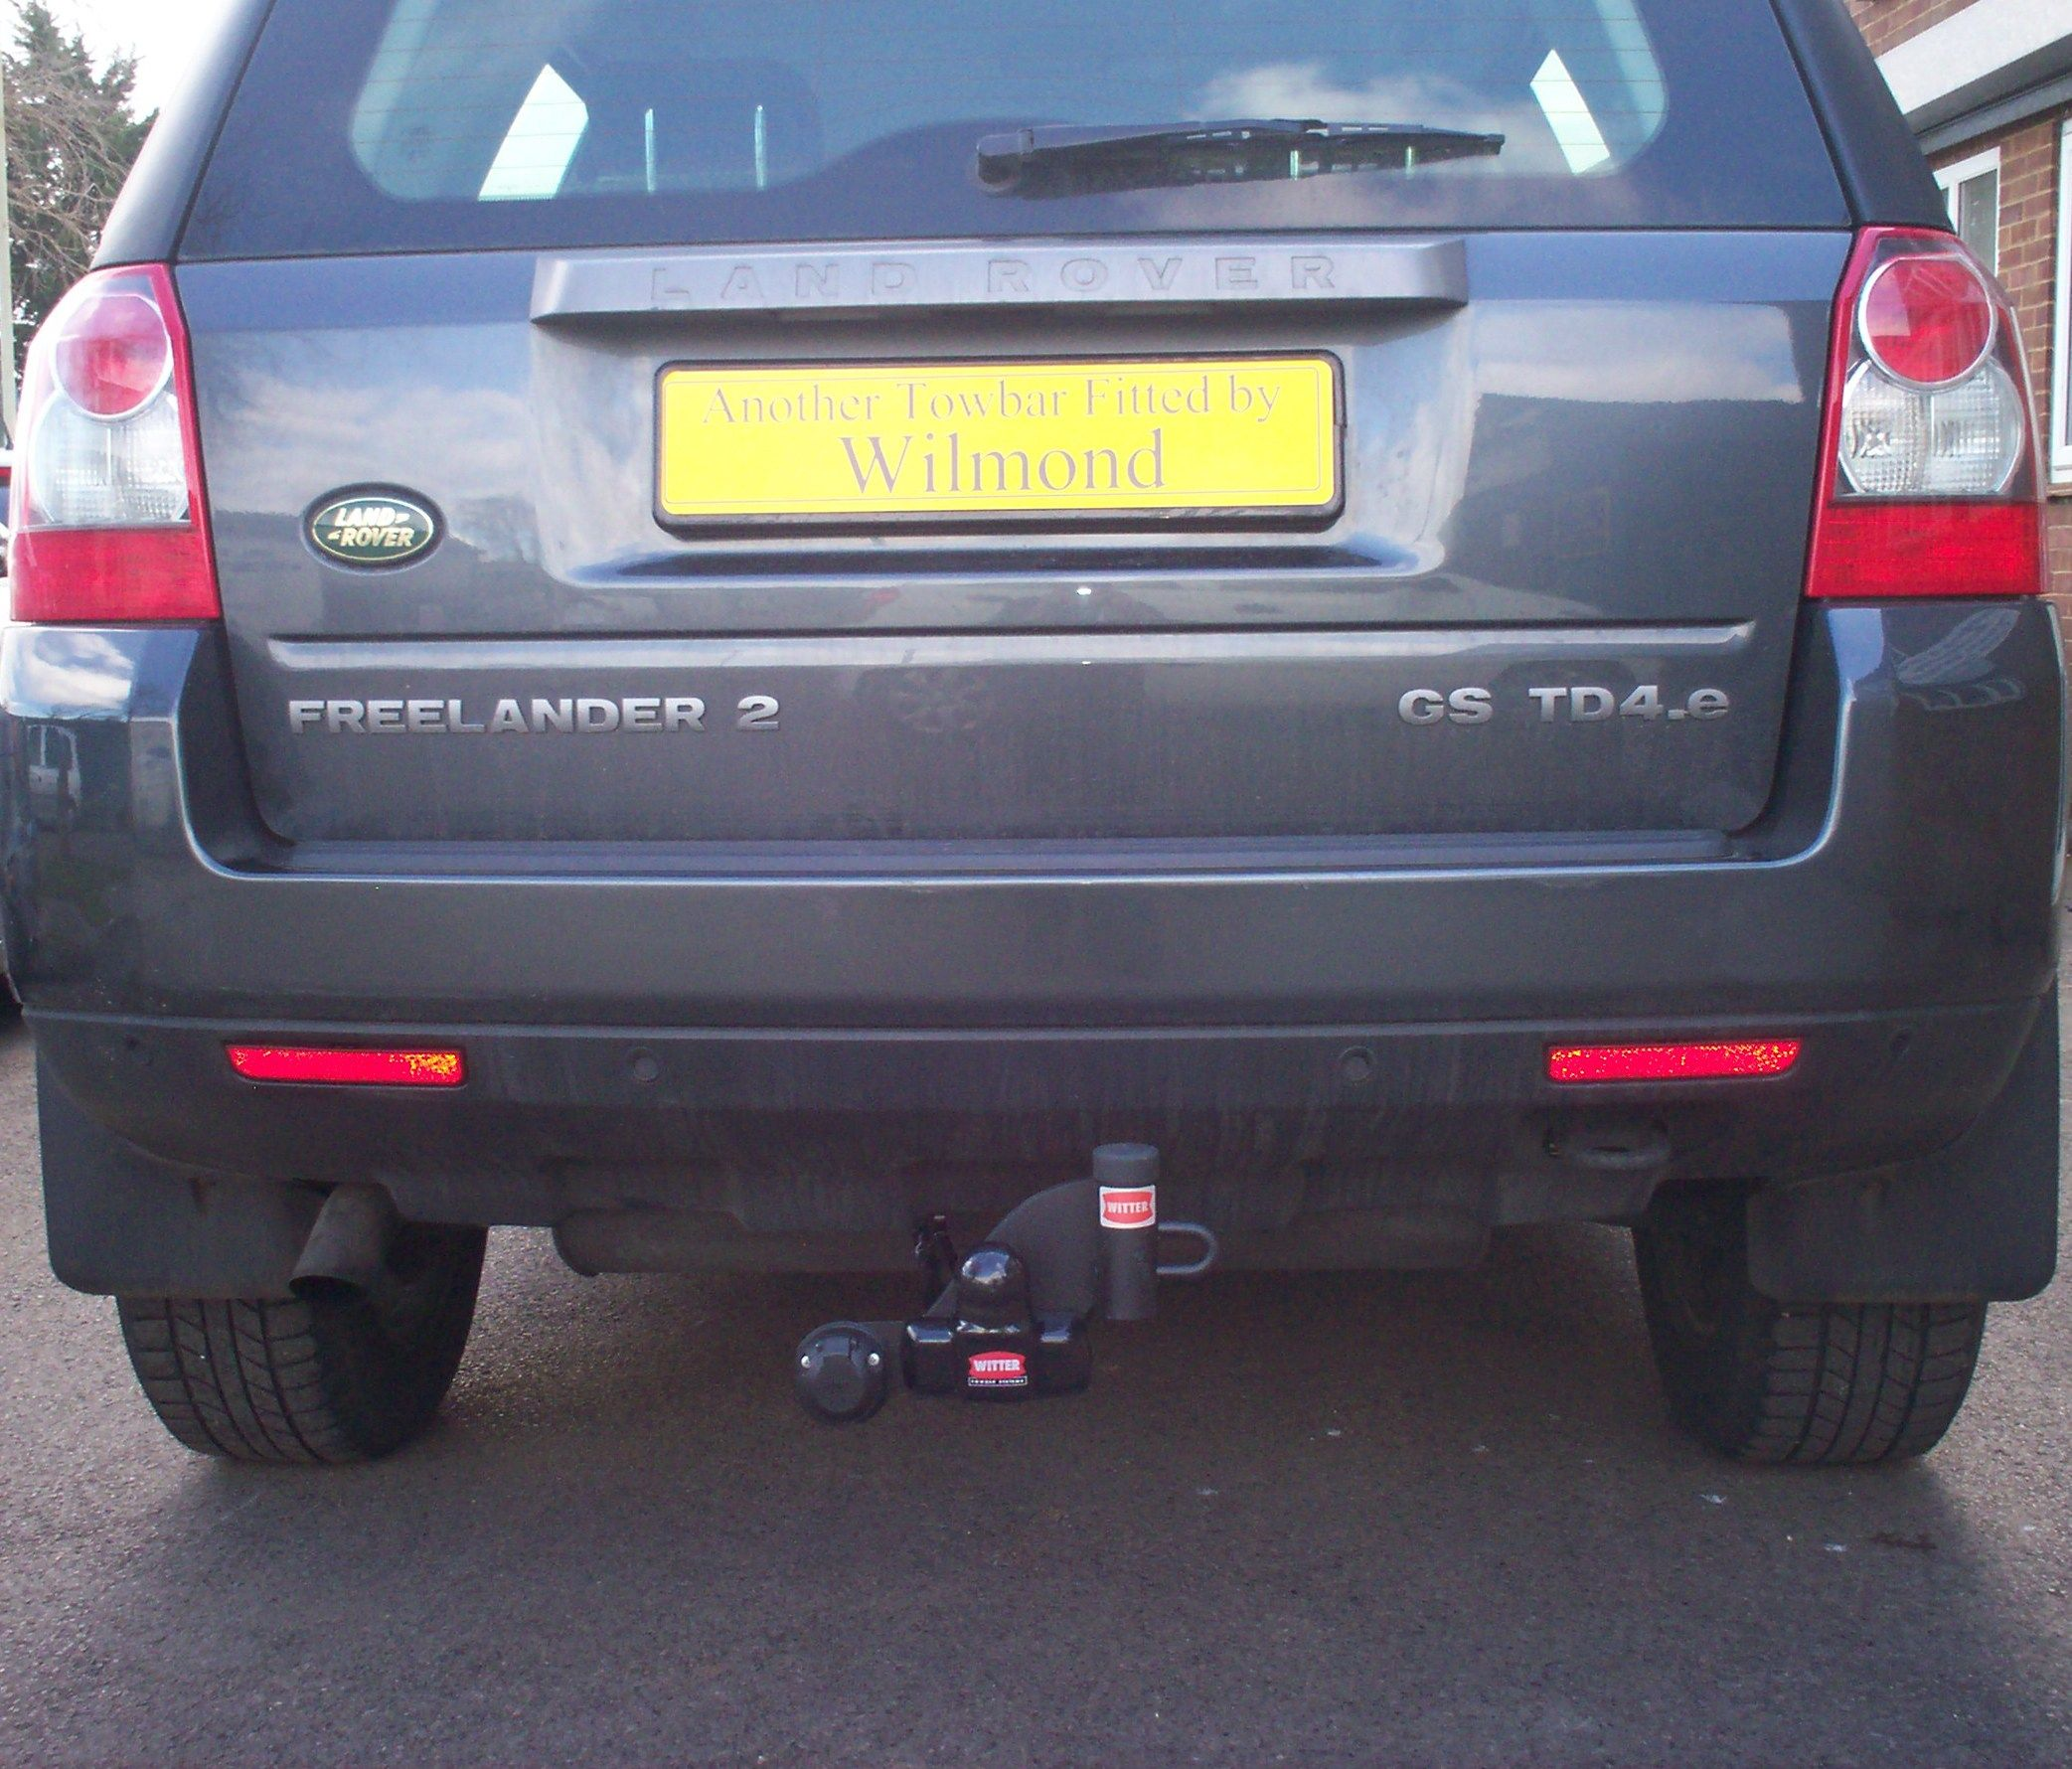 A Rv4216a Pct Automotive Flange Ball Towbar And Single 7 Pin Land Rover Freelander Wiring Diagram 2 Fitted With Witter Cycle Carrier